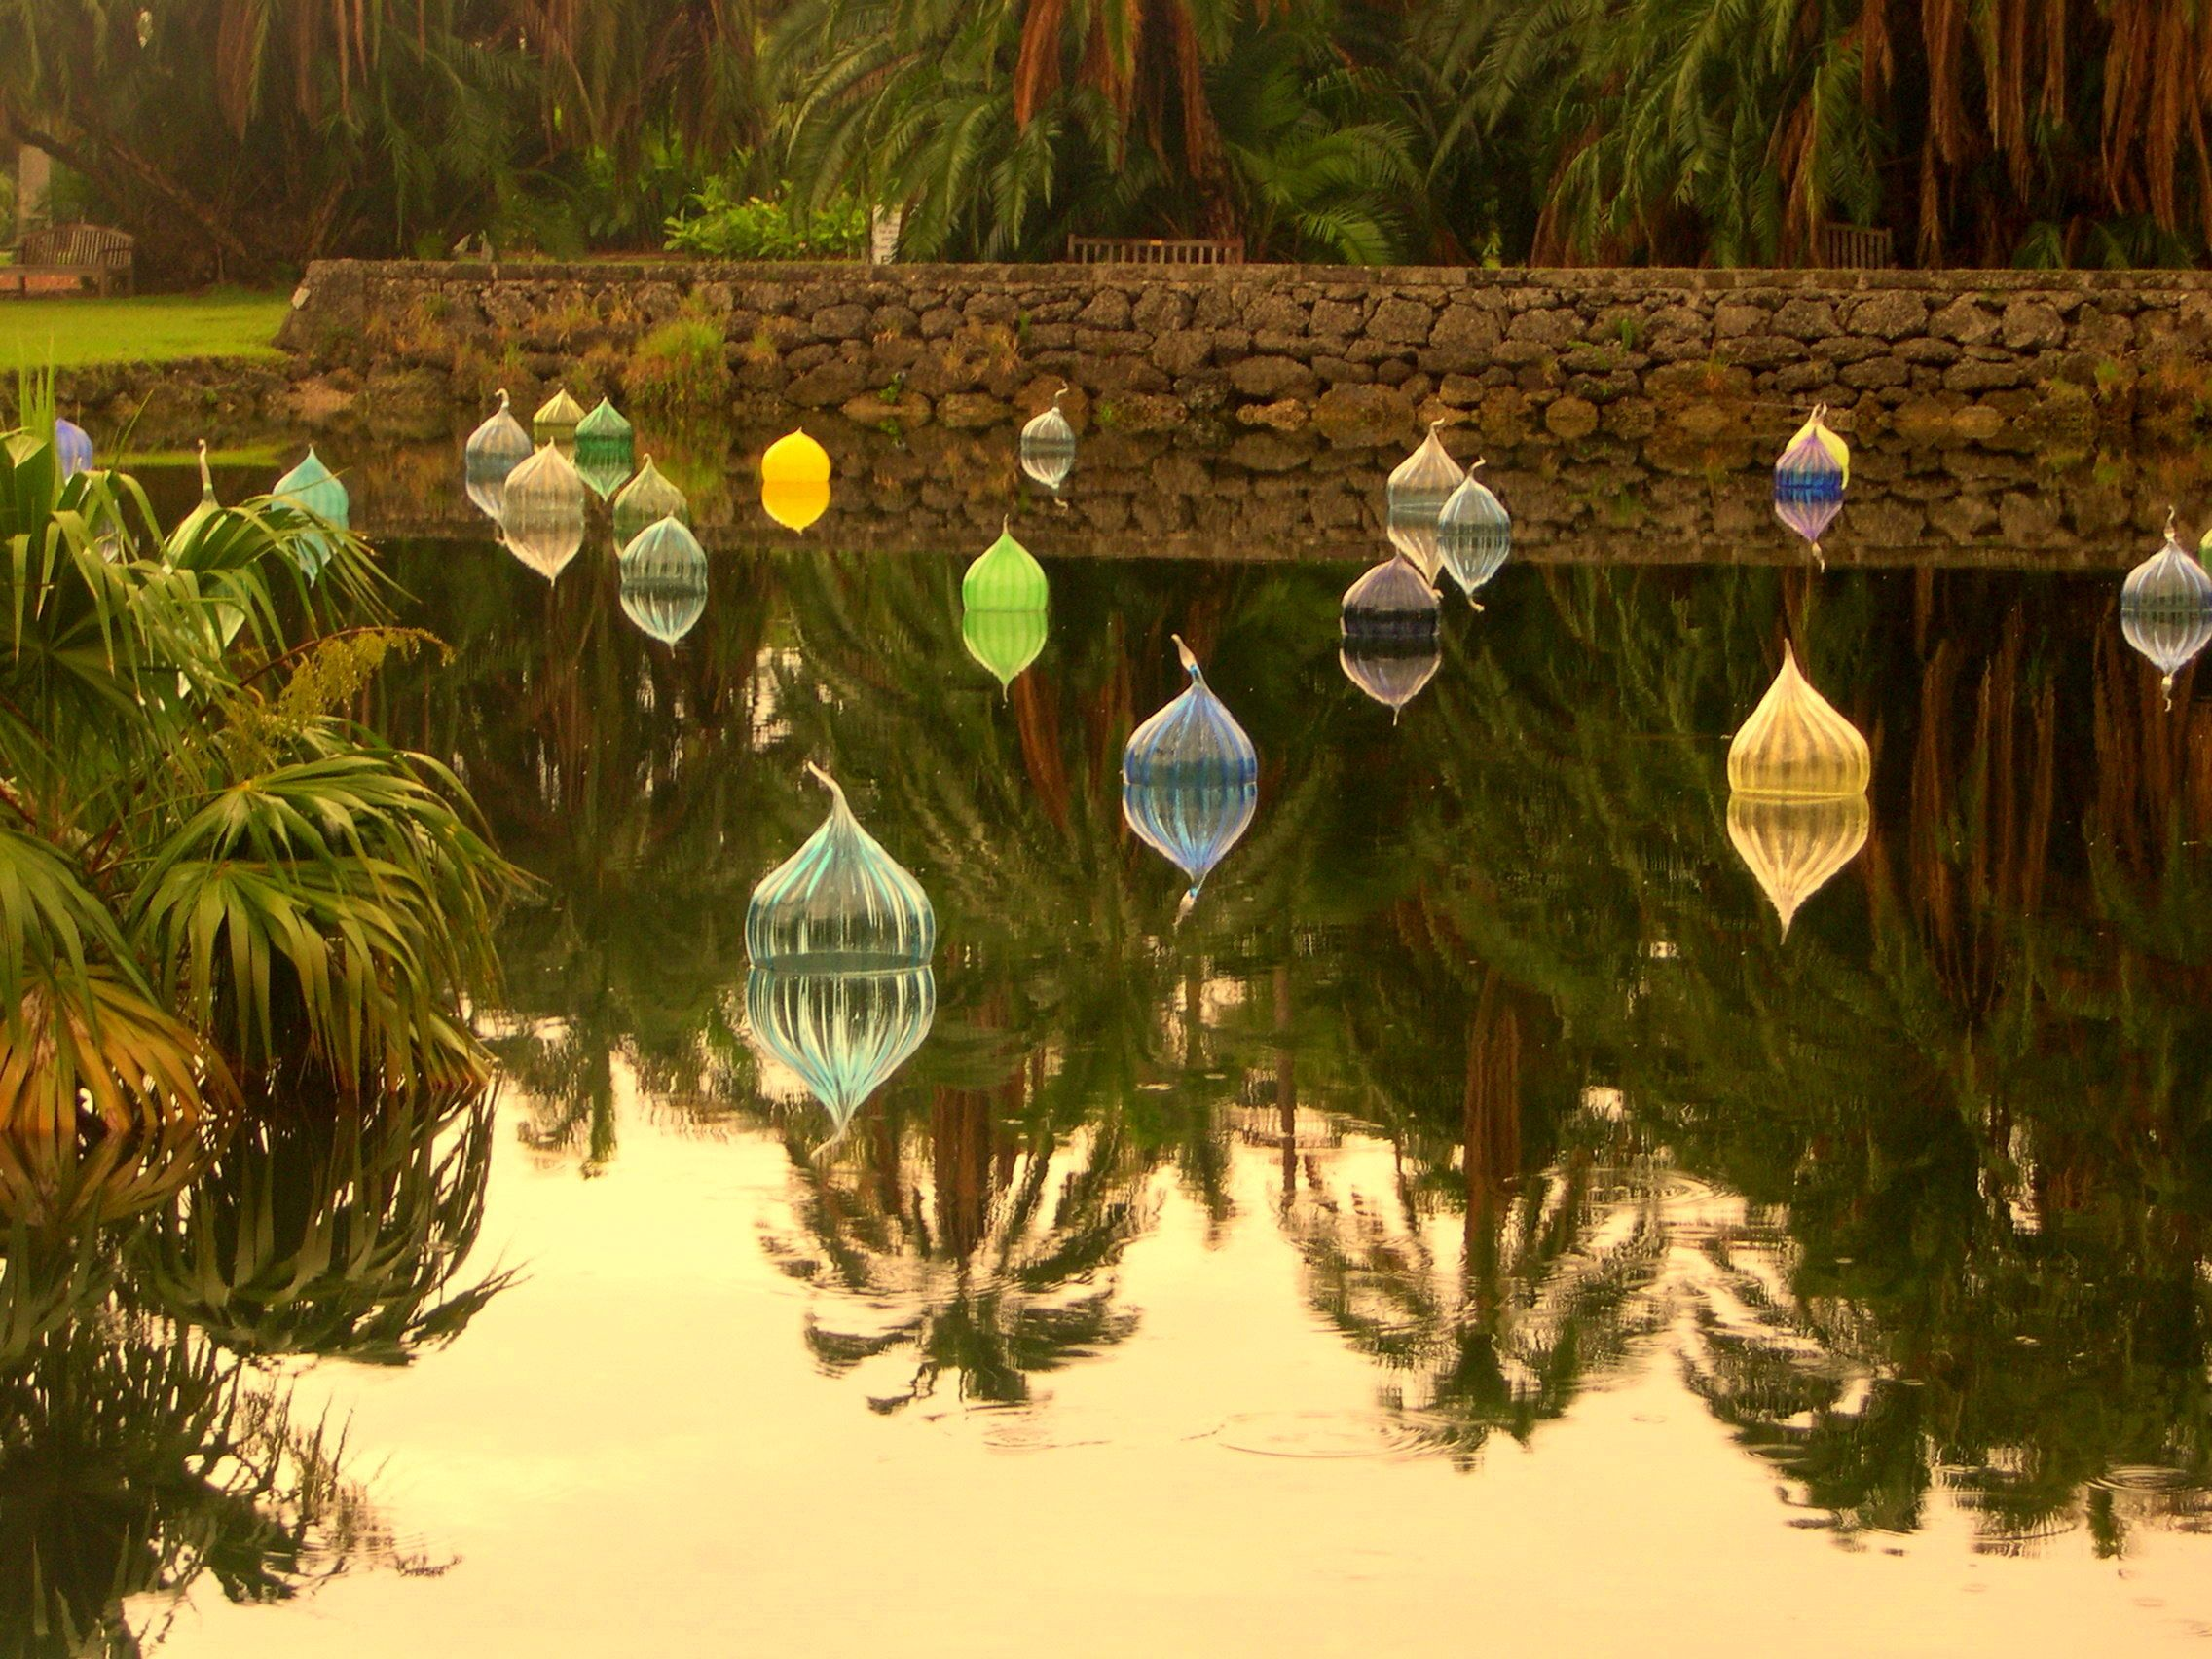 Chihuly floats - Fairchild Tropical Garden | Reflection ...